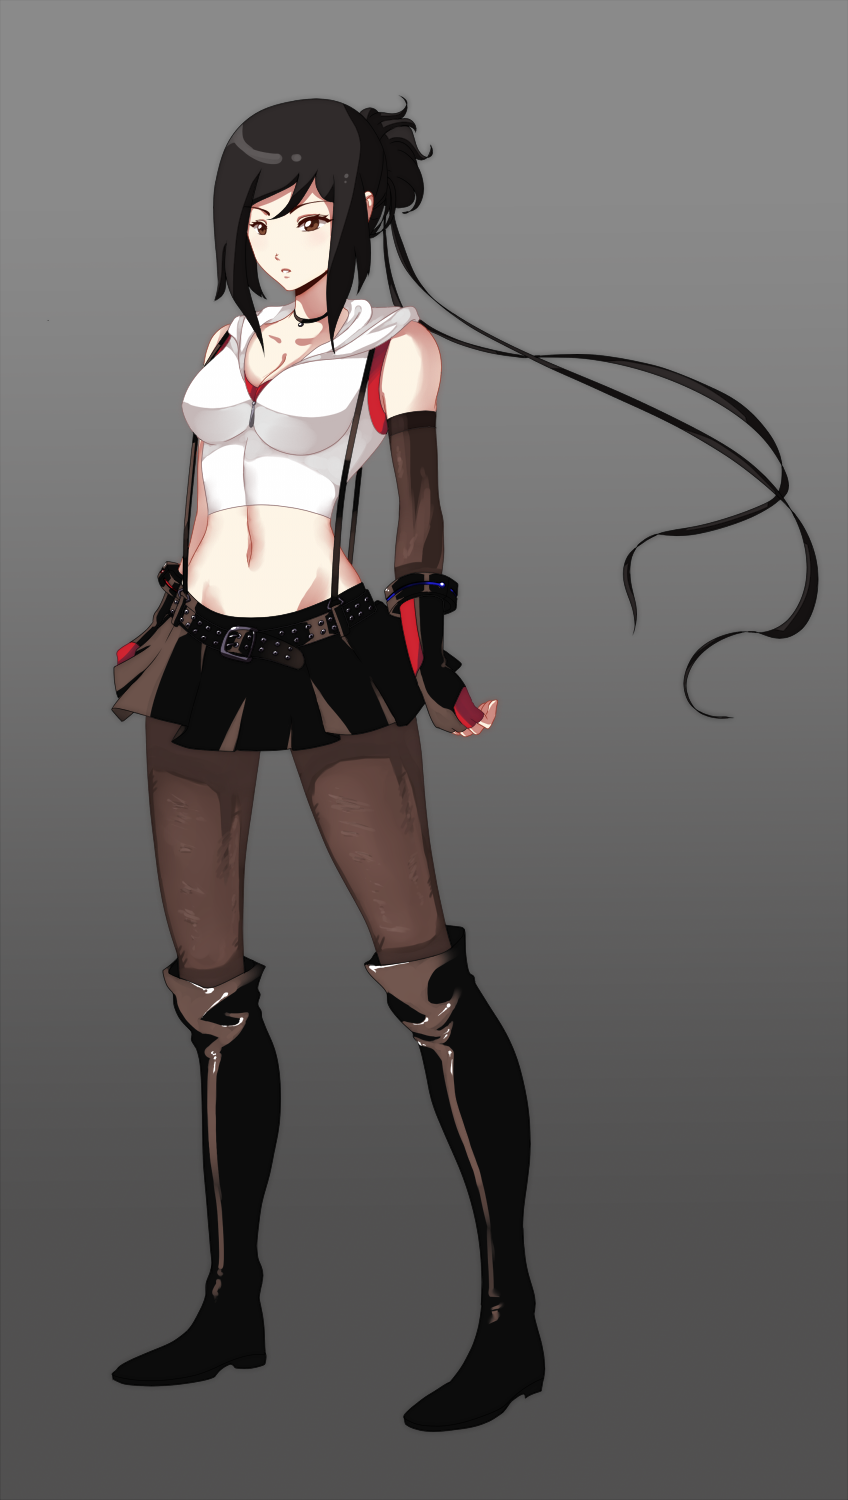 RWBY OC Leila Souris Alternative Outfit by 21as on DeviantArt